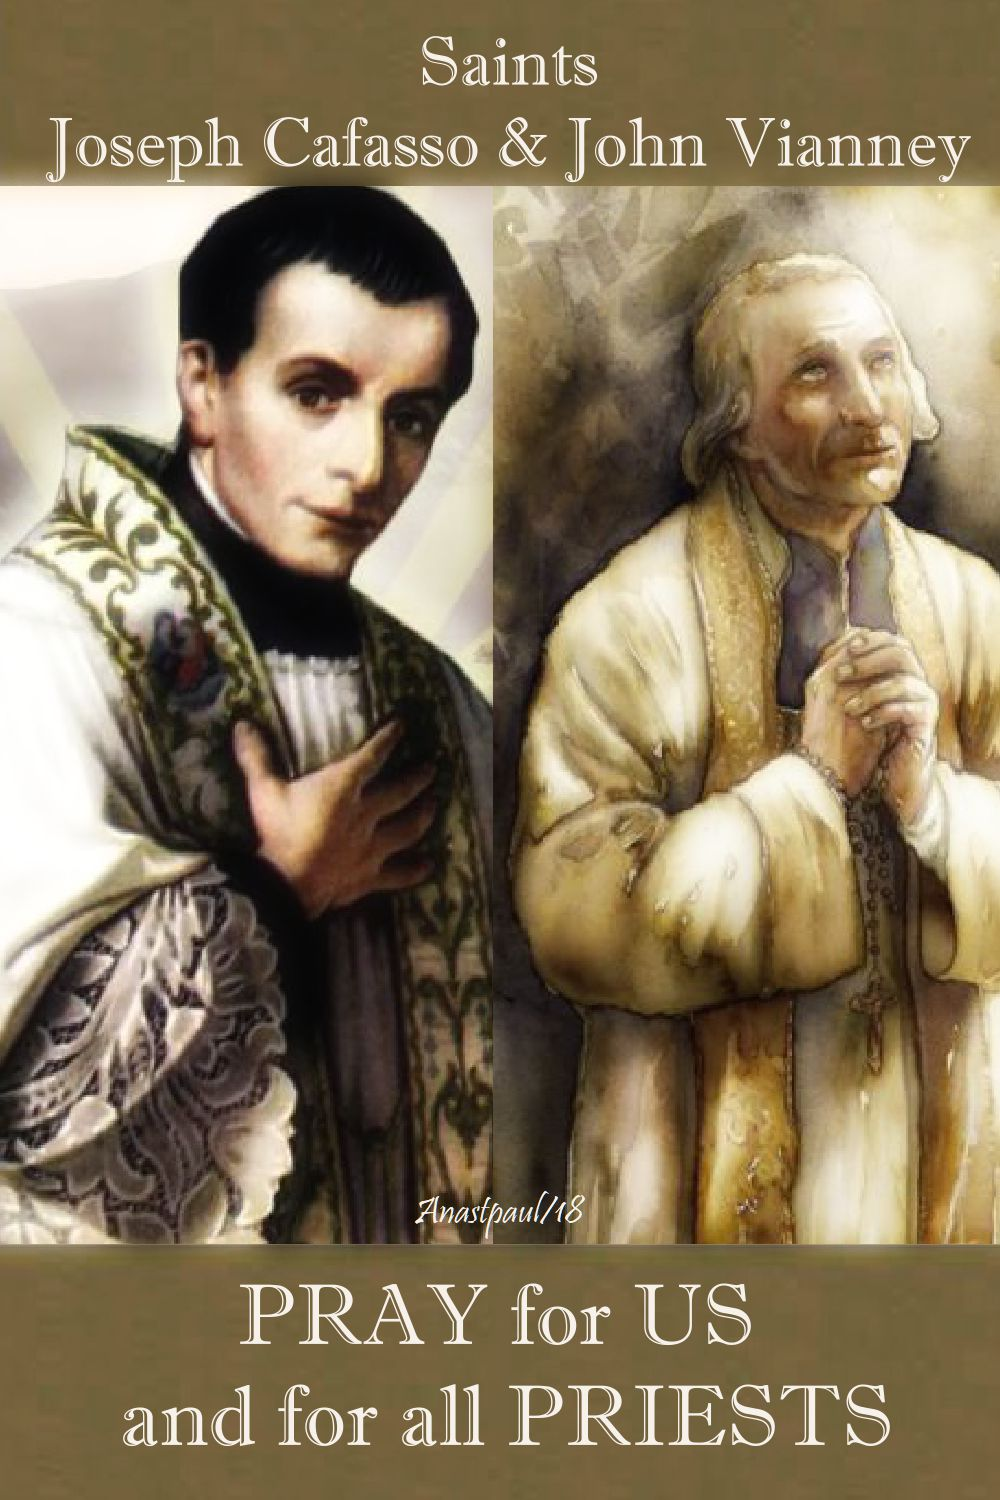 sts joseph cafasso and john vianney - pray for us and all priests - 23 june 2018